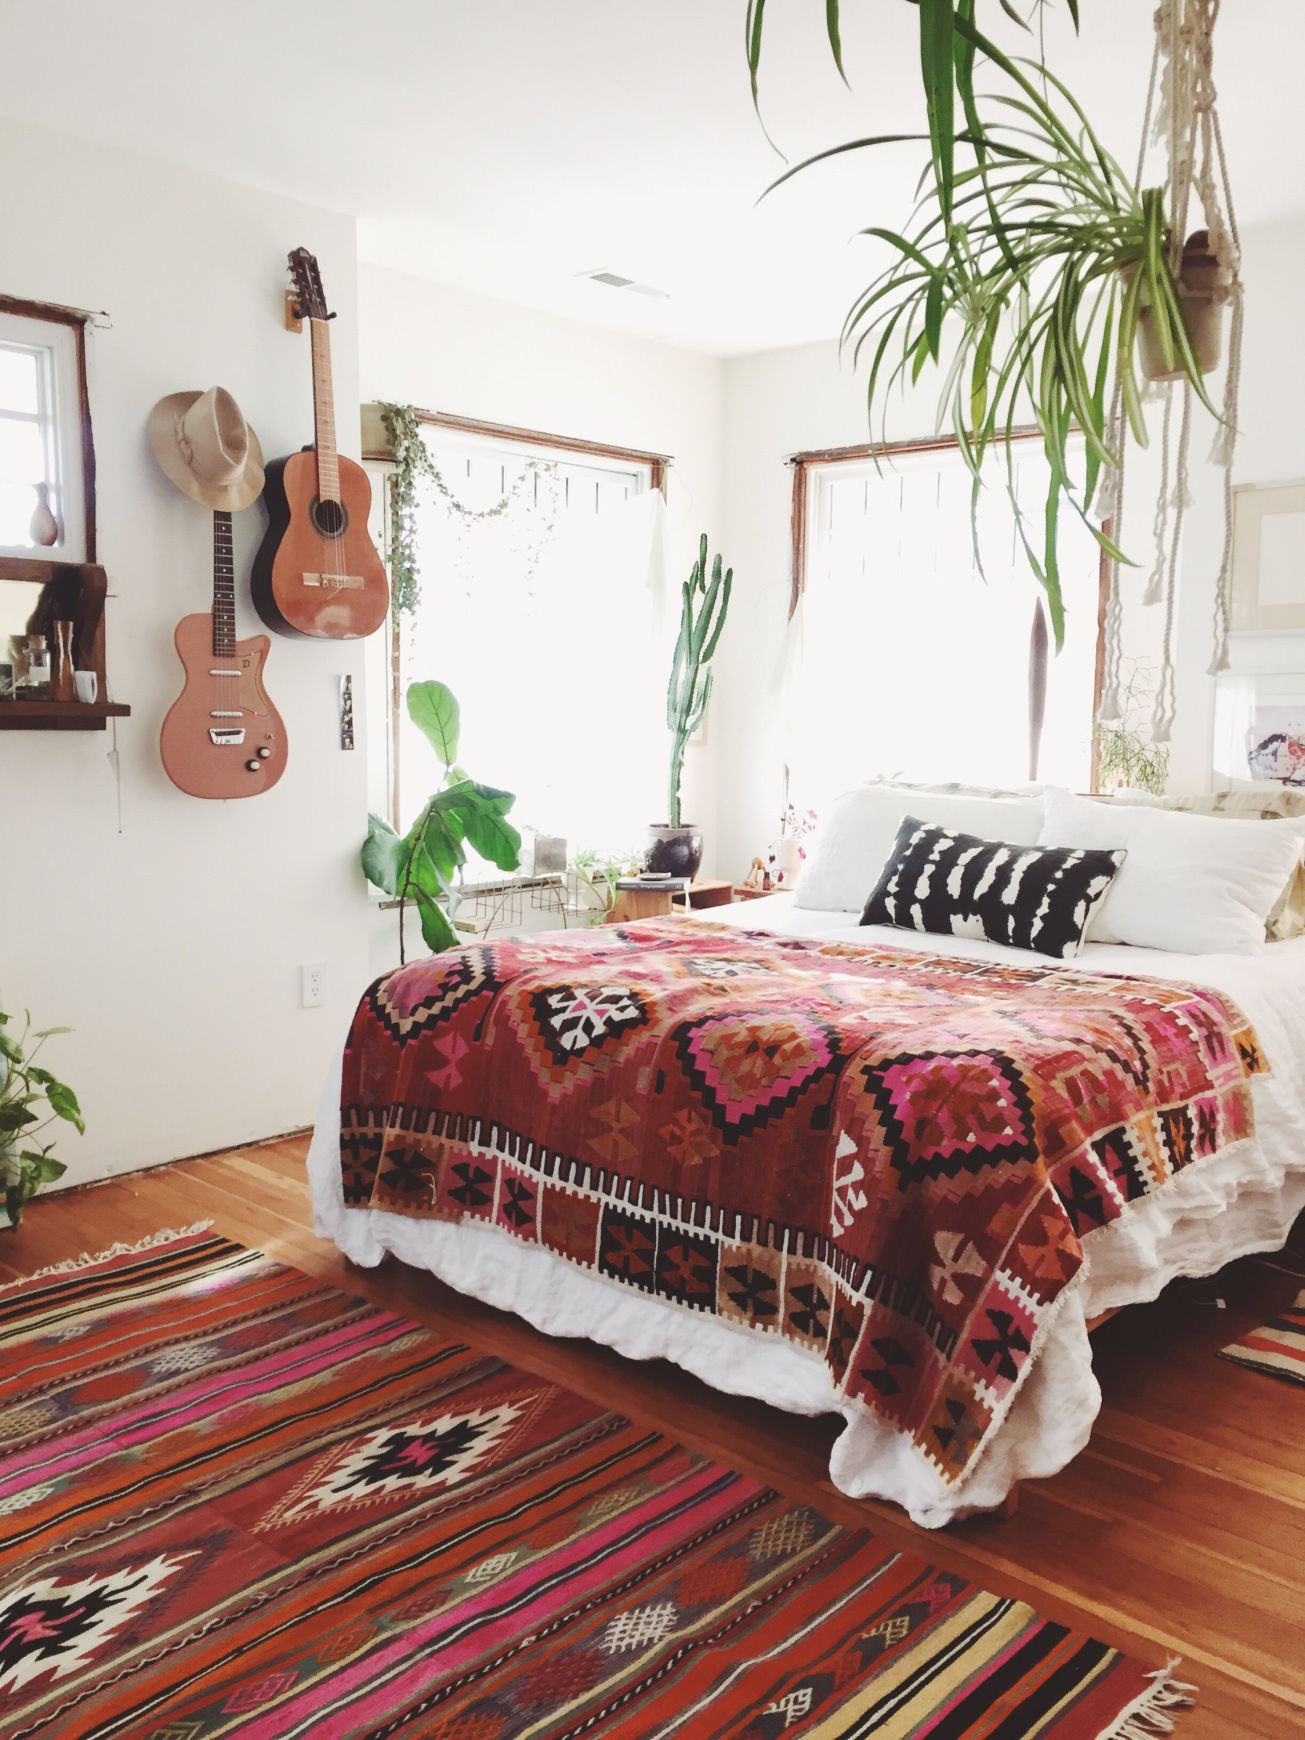 Delicieux 25 Bohemian Bedroom Decor Ideas That Will Make You Want To Redecorate ASAP  | @stylecaster